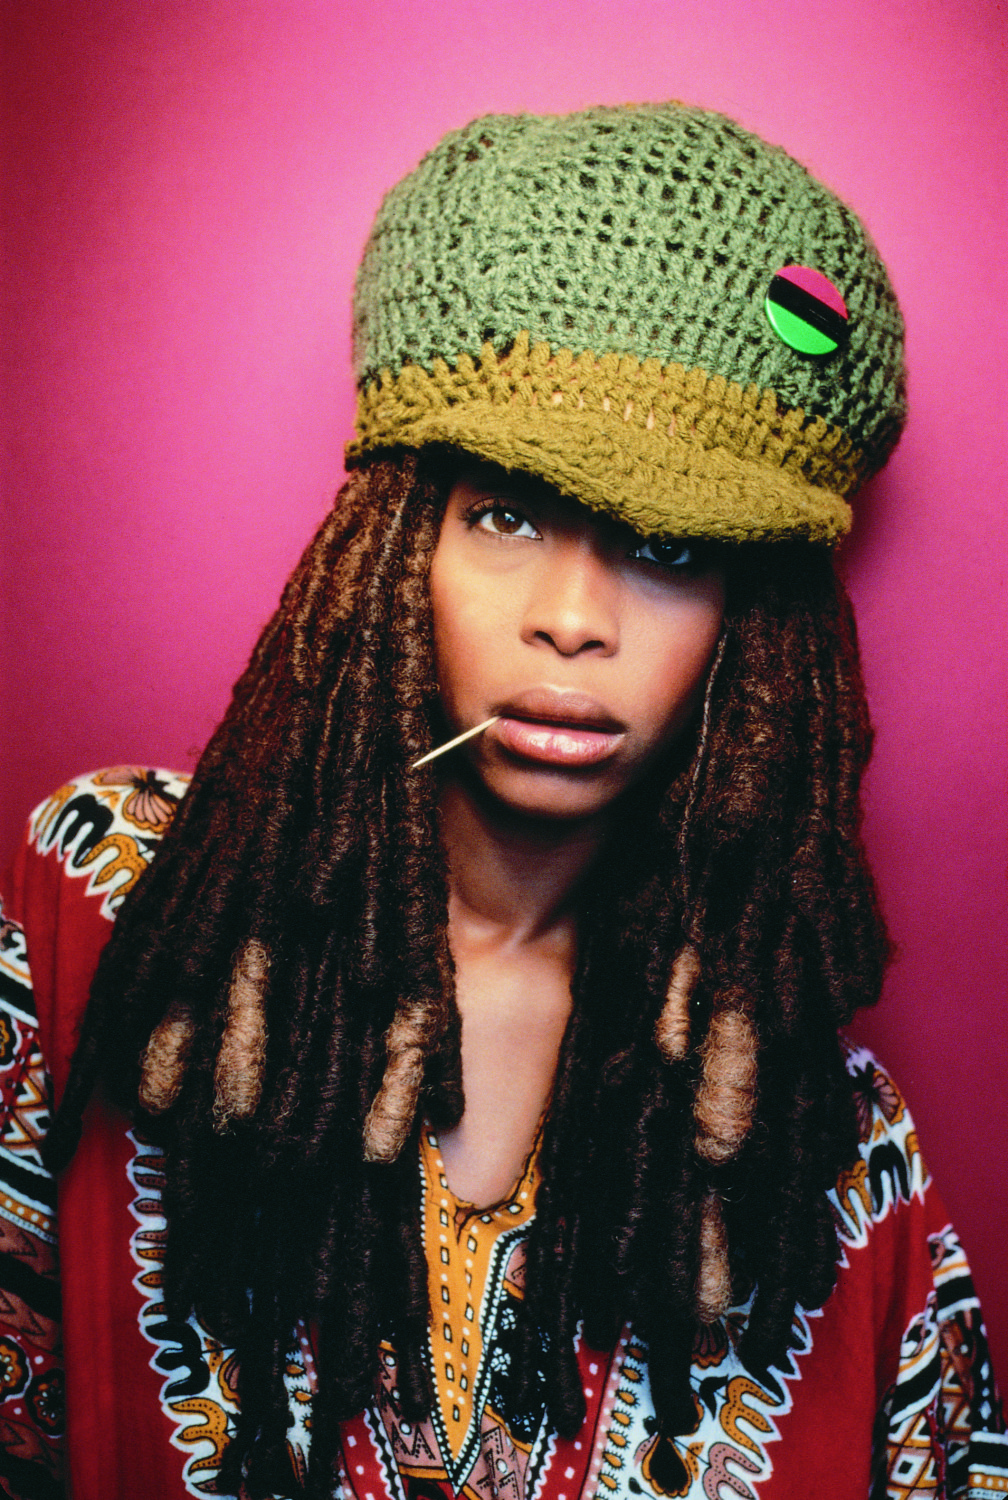 erykah badu the healererykah badu you got me, erykah badu the healer, erykah badu baduizm, erykah badu tyrone, erykah badu скачать, erykah badu i'm in love with you, erykah badu on and on, erykah badu mama's gun, erykah badu 2016, erykah badu live, erykah badu in love with you, erykah badu bag lady, erykah badu phone down, erykah badu – on & on перевод, erykah badu annie перевод, erykah badu last fm, erykah badu best songs, erykah badu hello, erykah badu wiki, erykah badu tyrone скачать